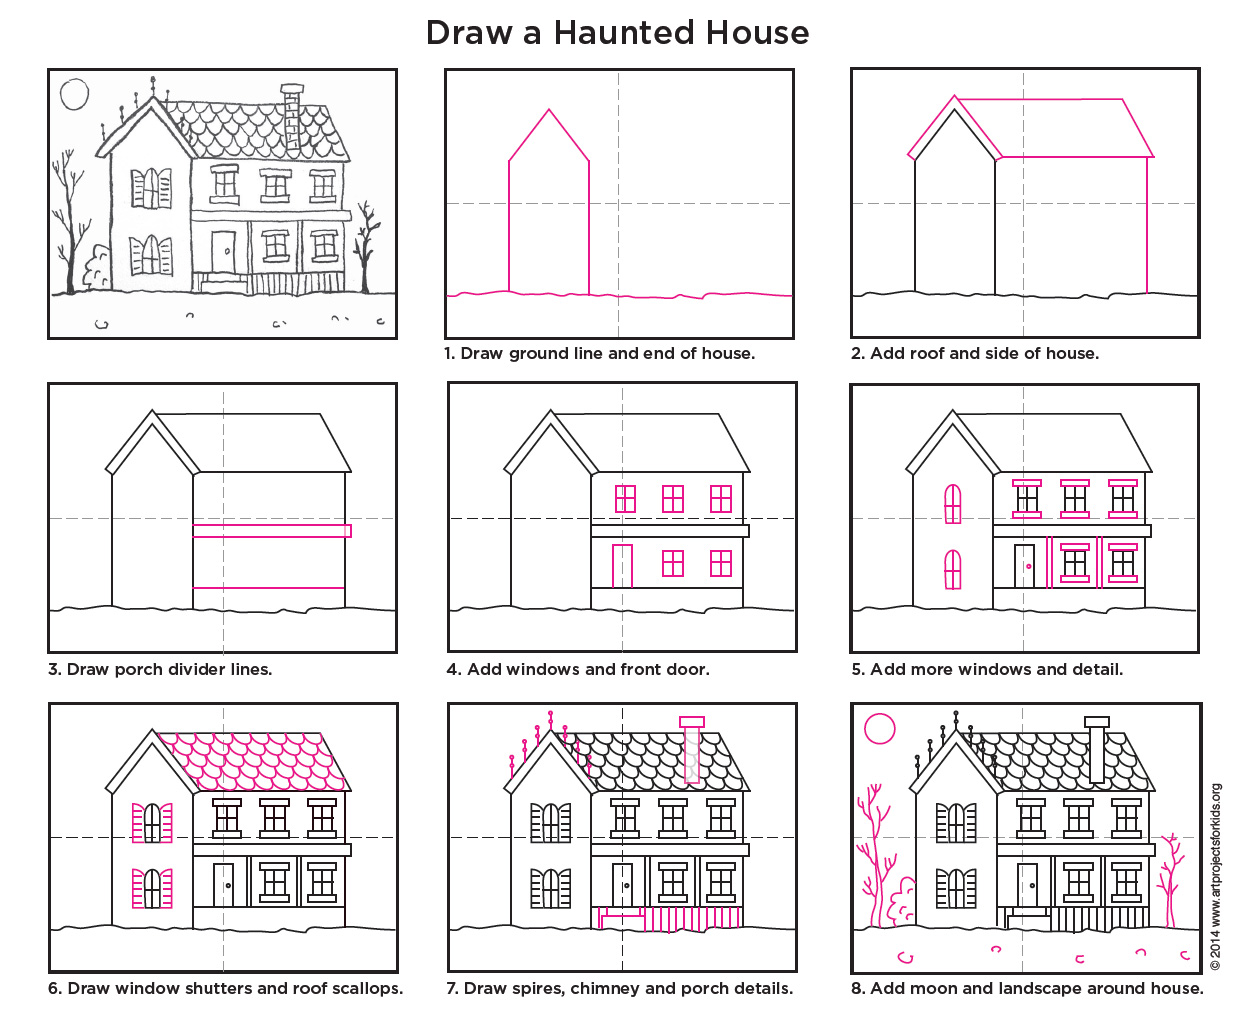 Elegant When Students Learn How To Draw A Haunted House, They Can Practice Their  Architectural Drawing While Changing Just A Few Elements To Make Their  Houses Extra ...